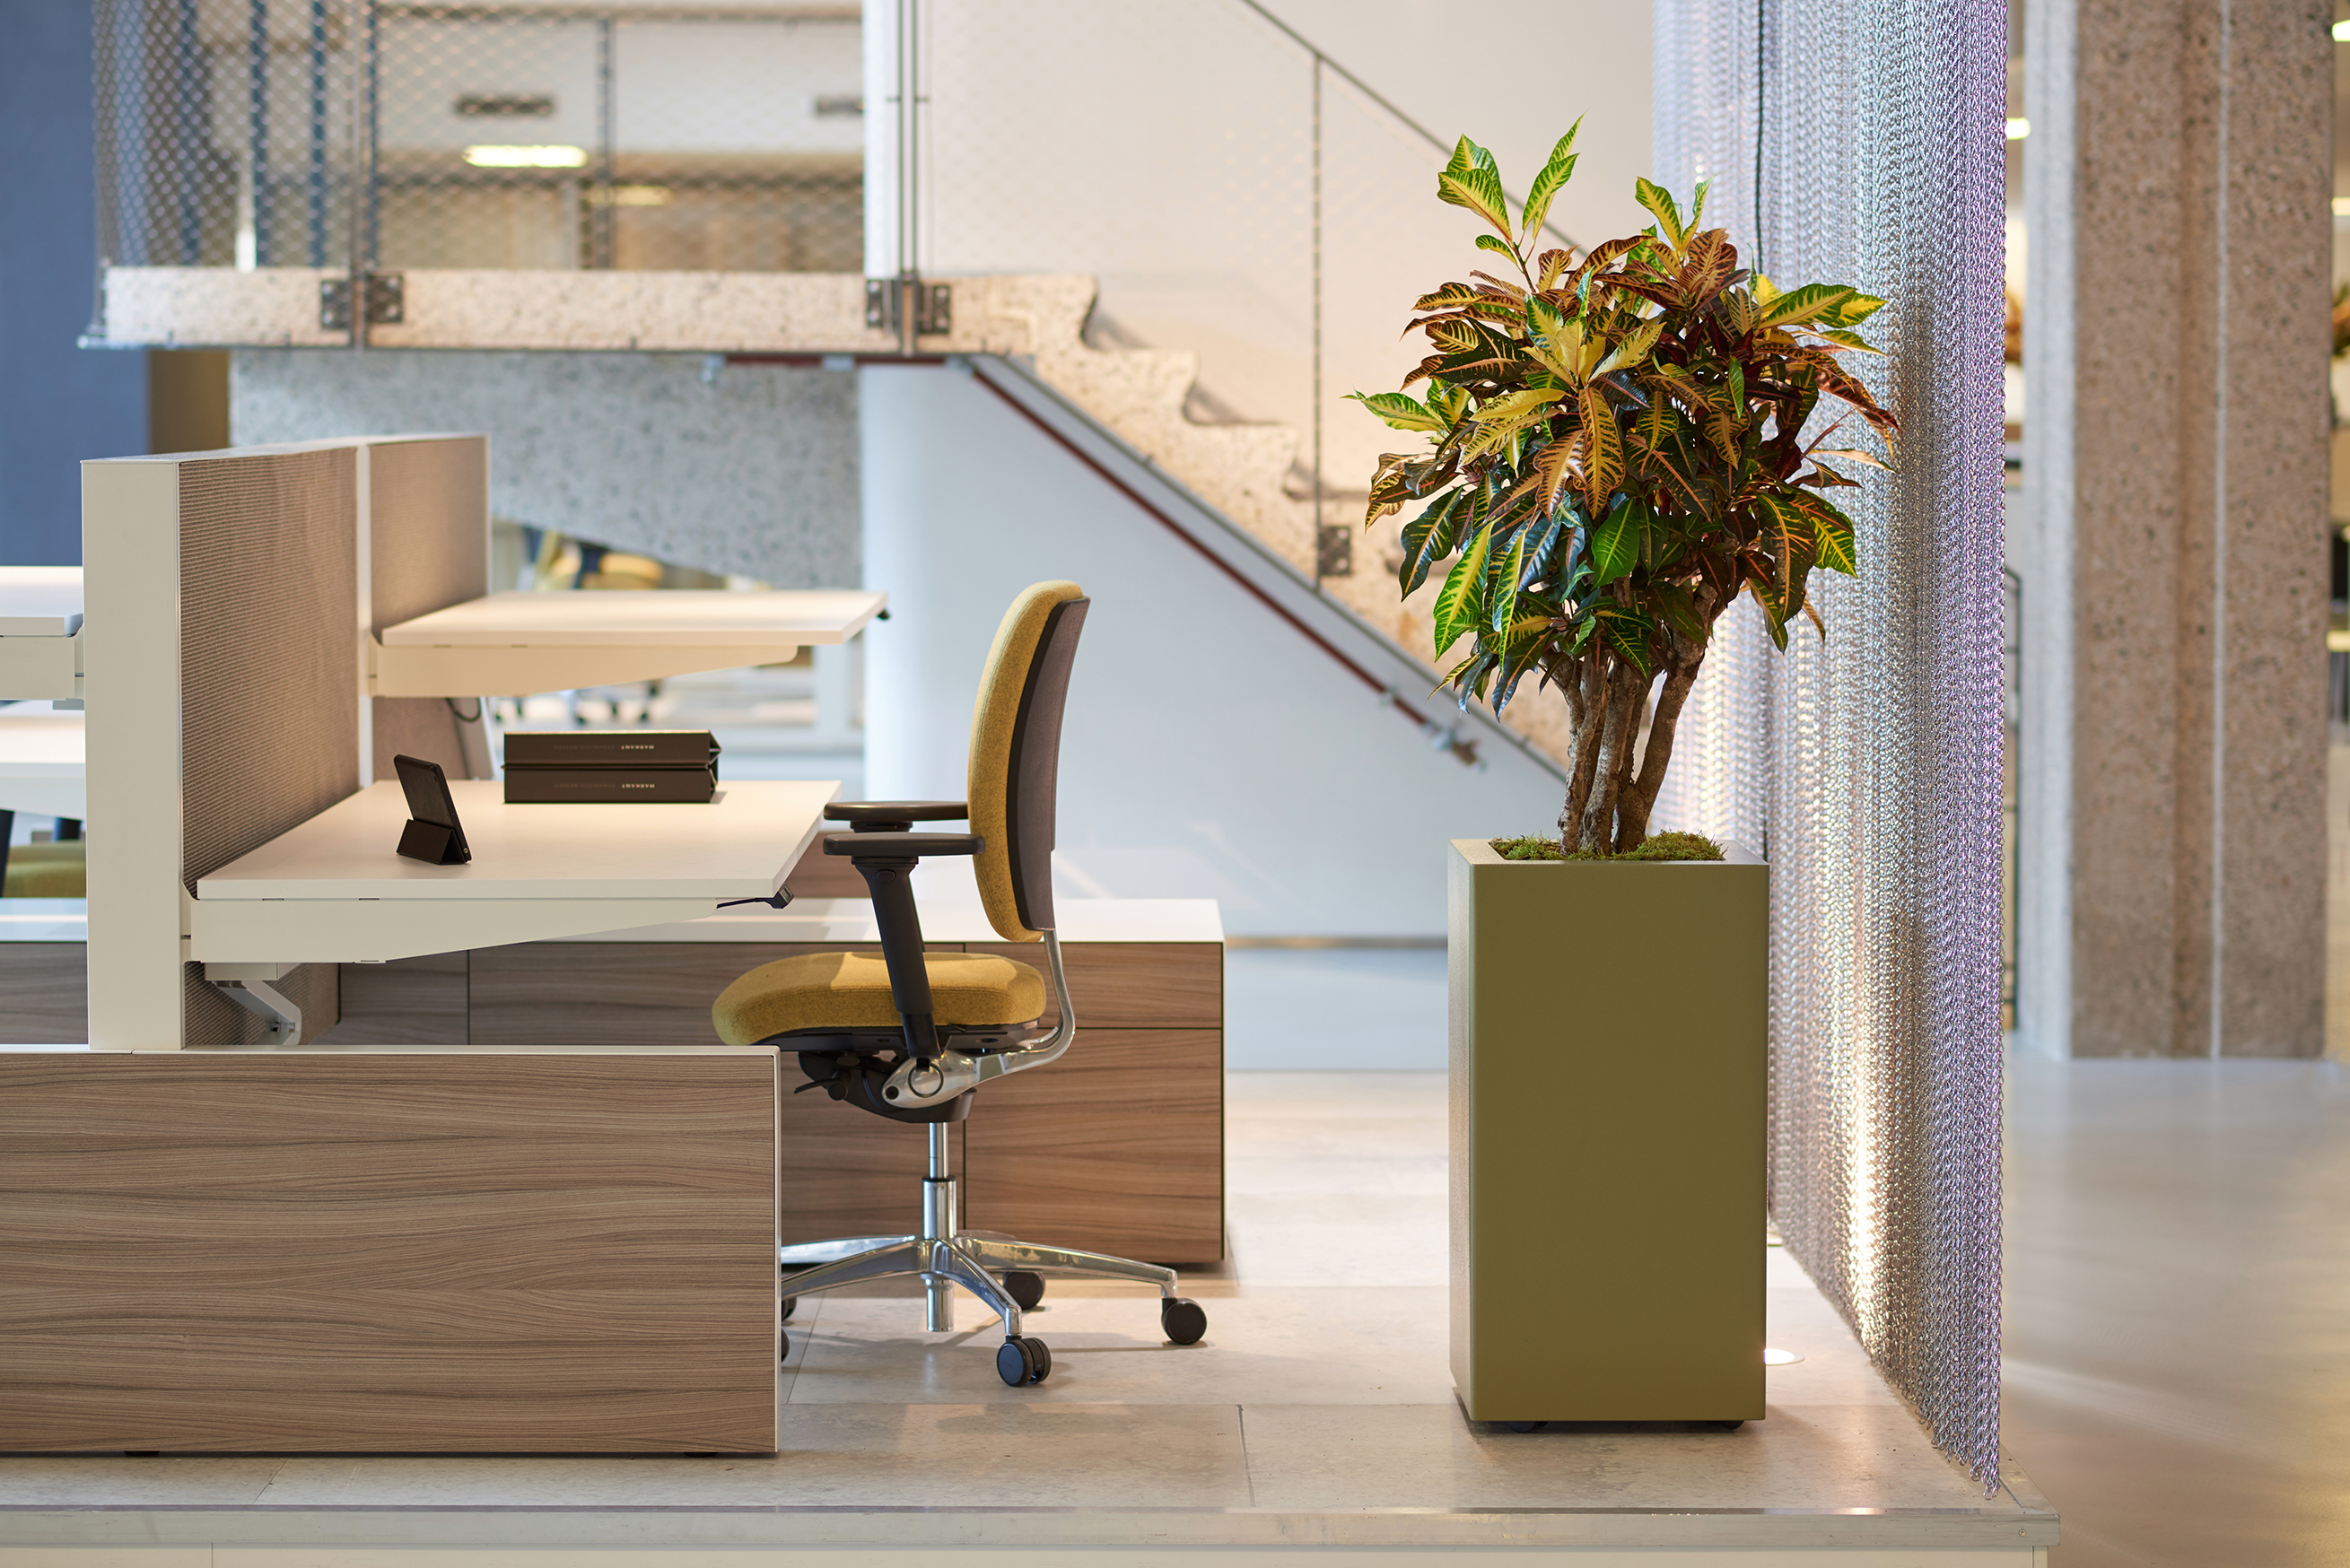 Freestanding Feature Plant